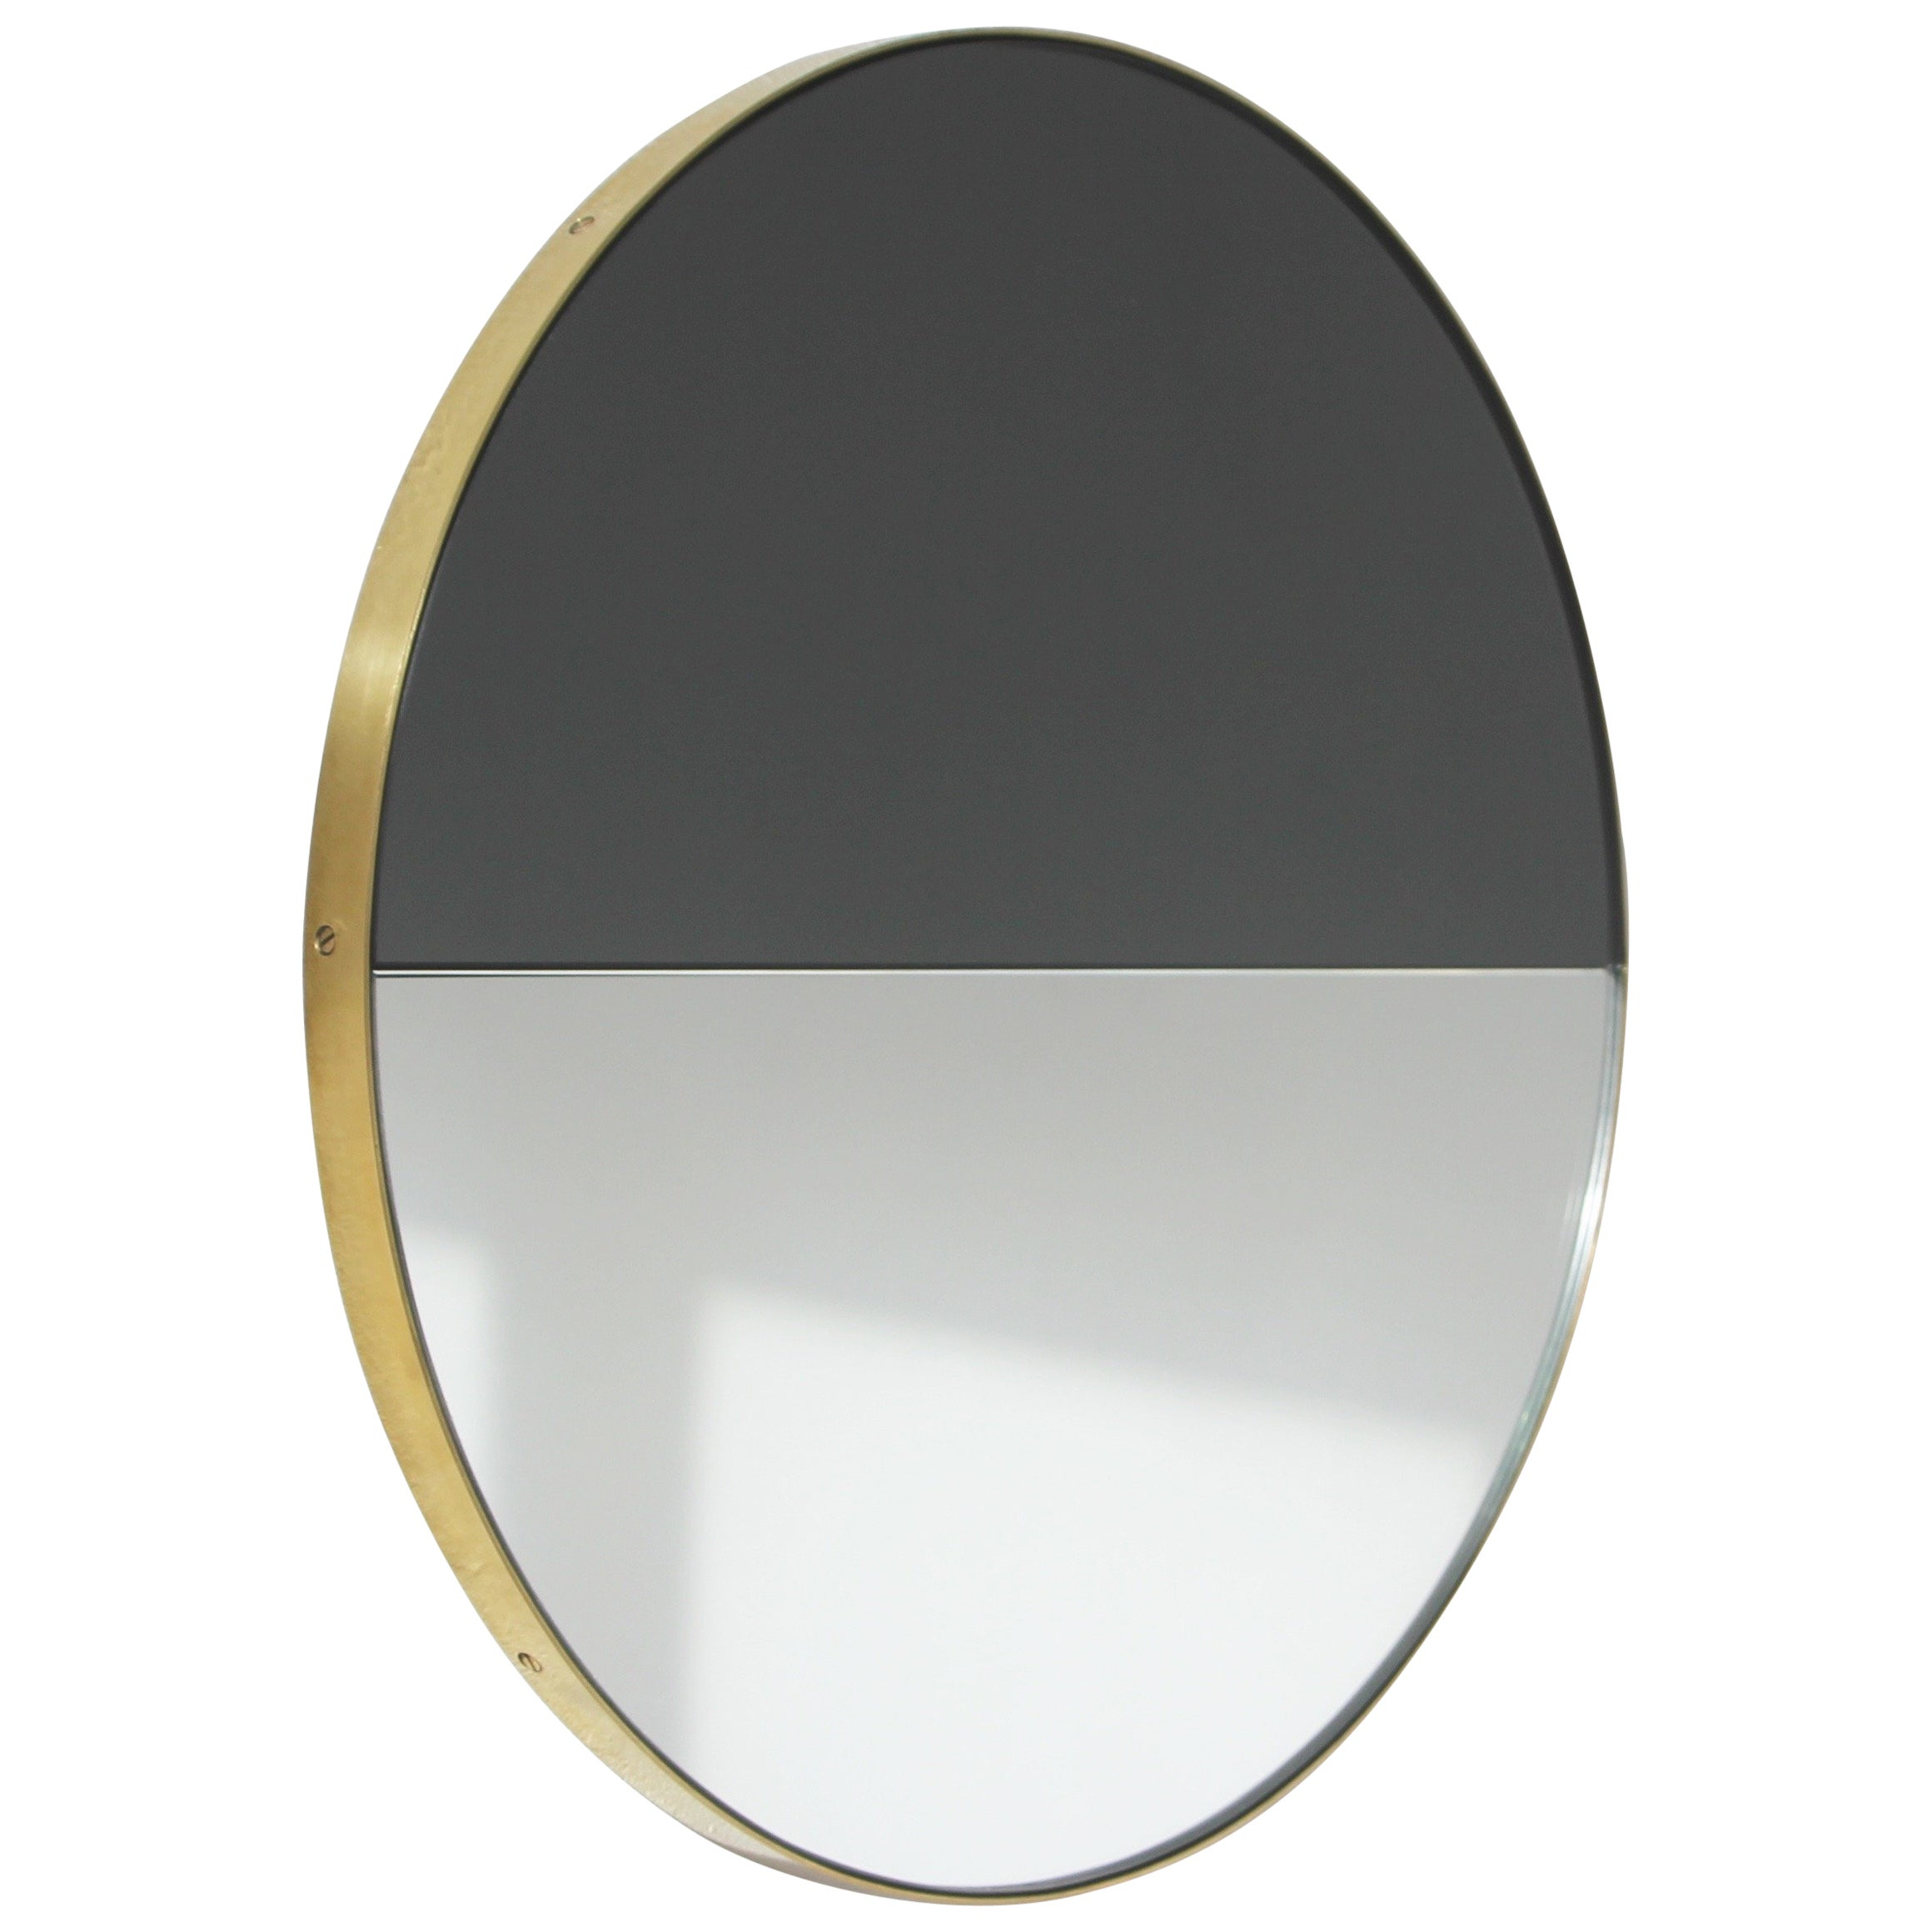 Orbis Dualis™ Mixed Tint Decorative Round Mirror with Brass Frame - Regular